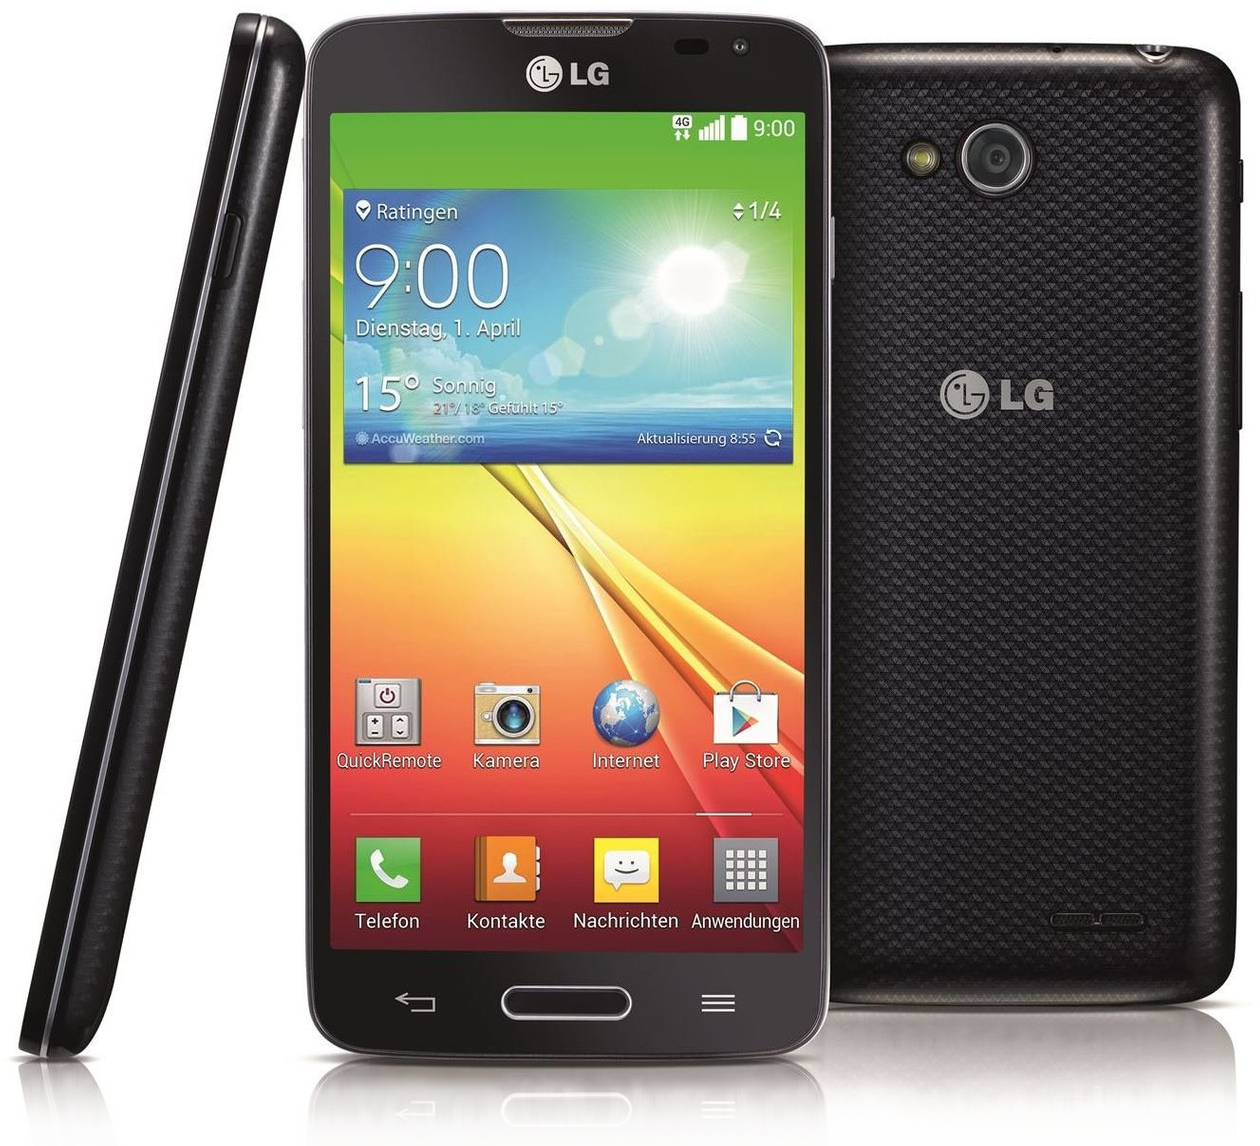 Phone Cheap Android T Mobile Phones lg optimus l90 basic 3g android smart phone t mobile mint mobile